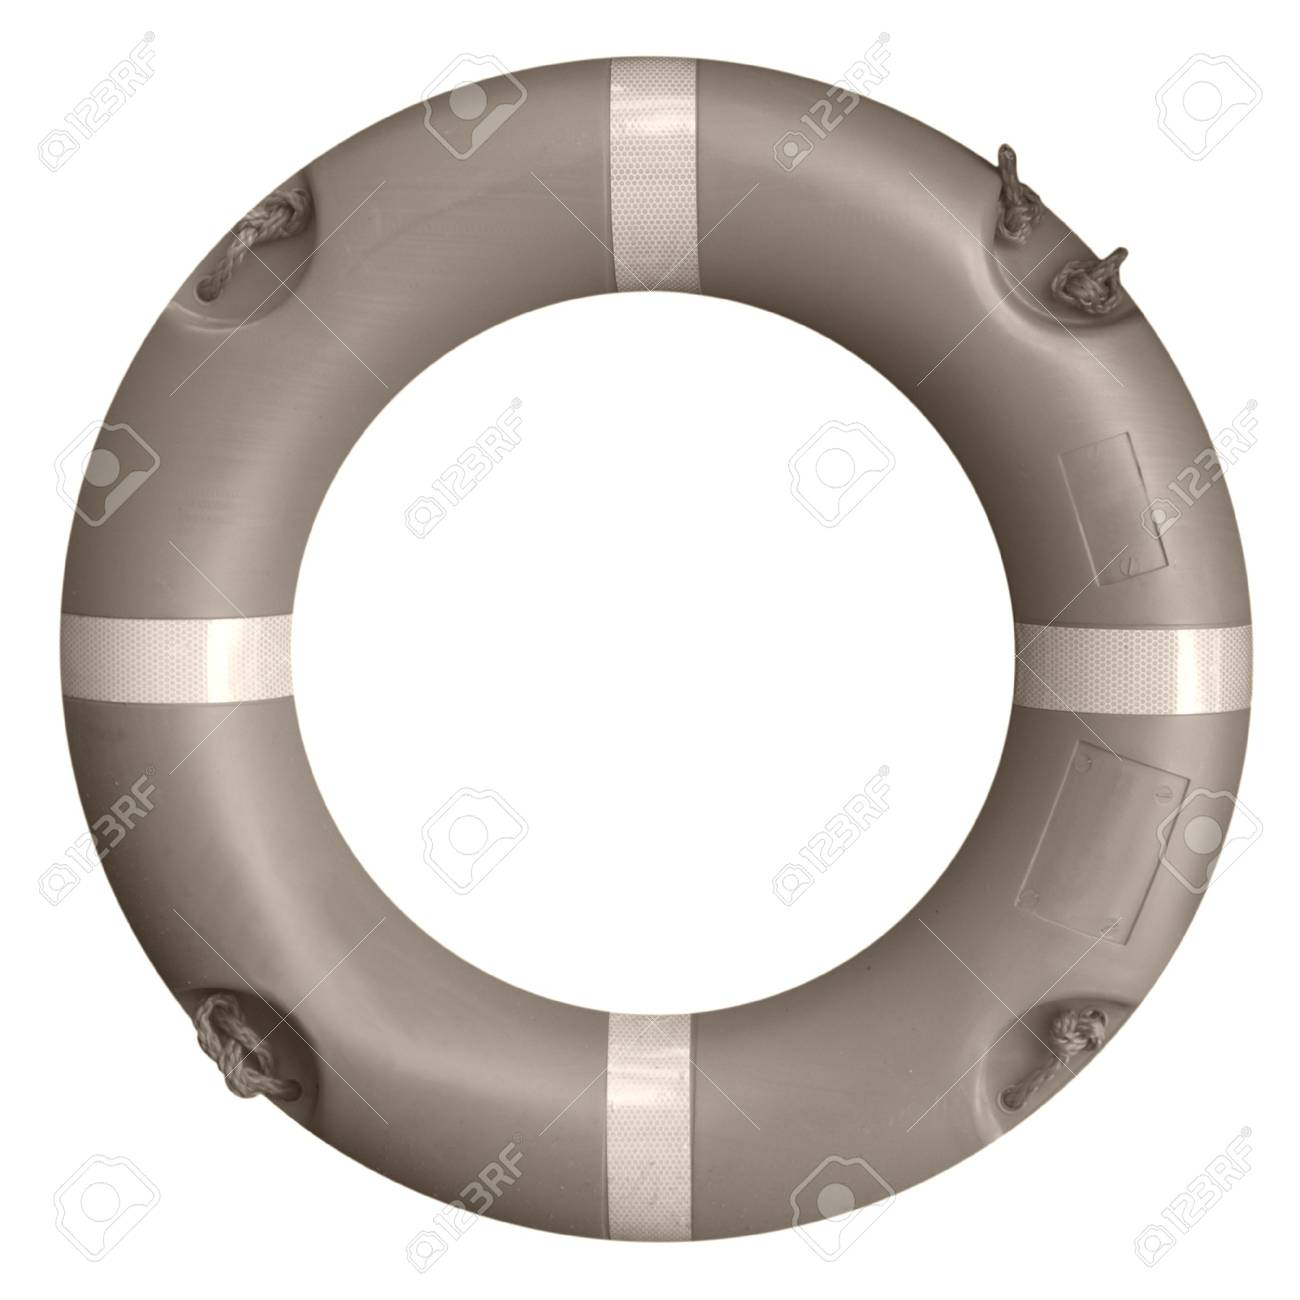 A life buoy for safety at sea - isolated over white background Stock Photo - 7601291